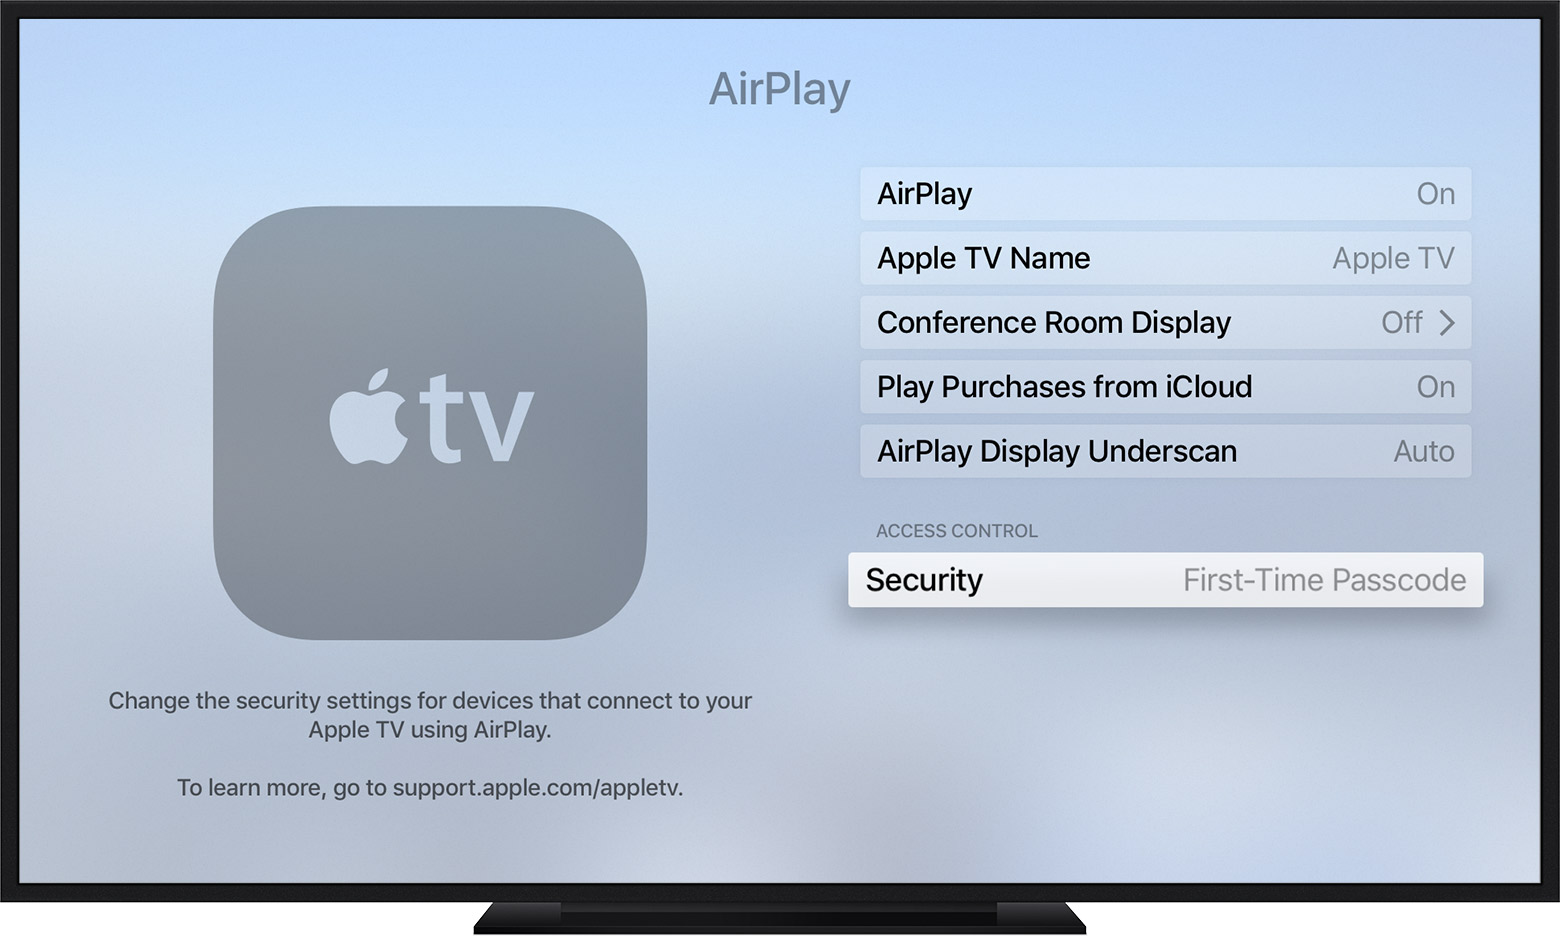 AIRPLAY WINDOWS 10 TO APPLE TV